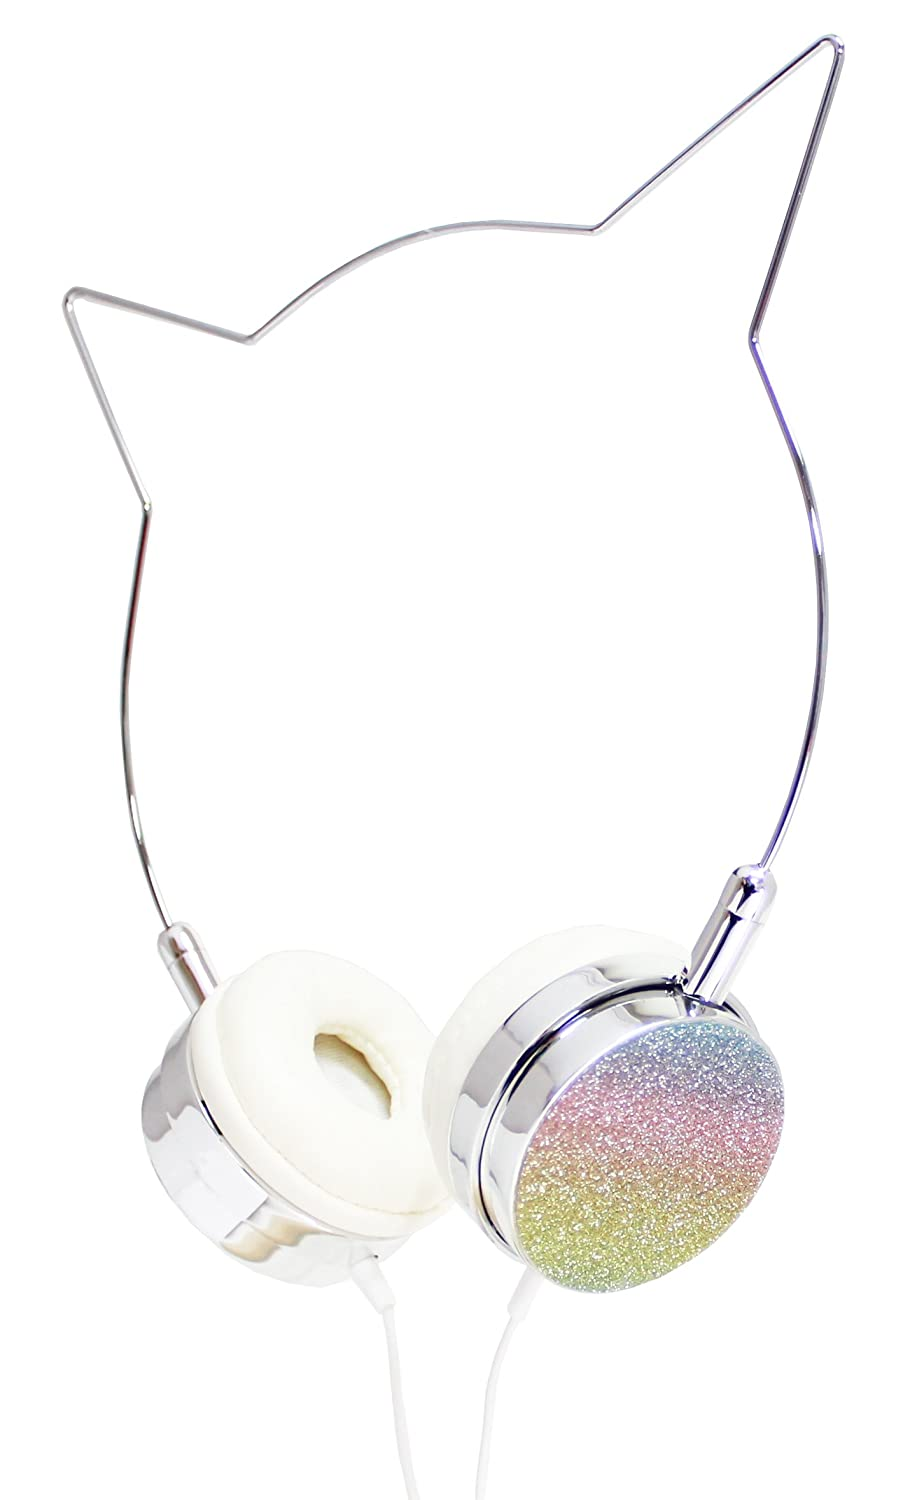 Kitty Cat Ear Headphones - Wire Frame Headset with Volume Control and Microphone - Silver & Rainbow American Jewel LLC 8256NA